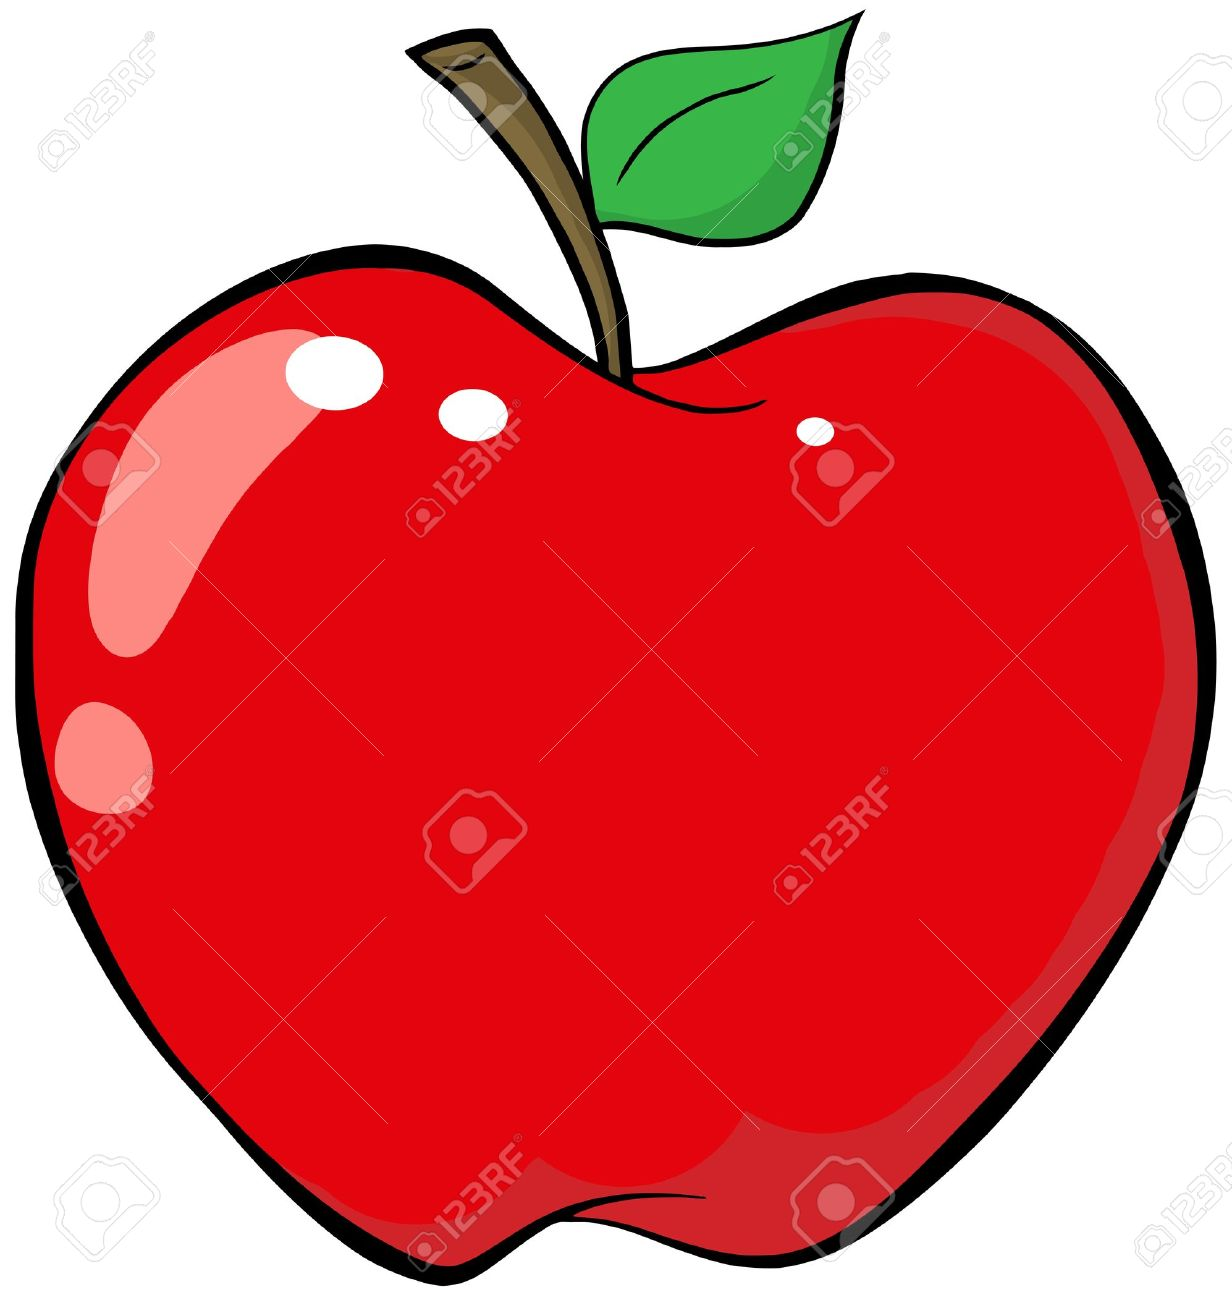 cartoon red apple royalty free cliparts vectors and stock rh 123rf com apple carton pencil case apple's cartoons